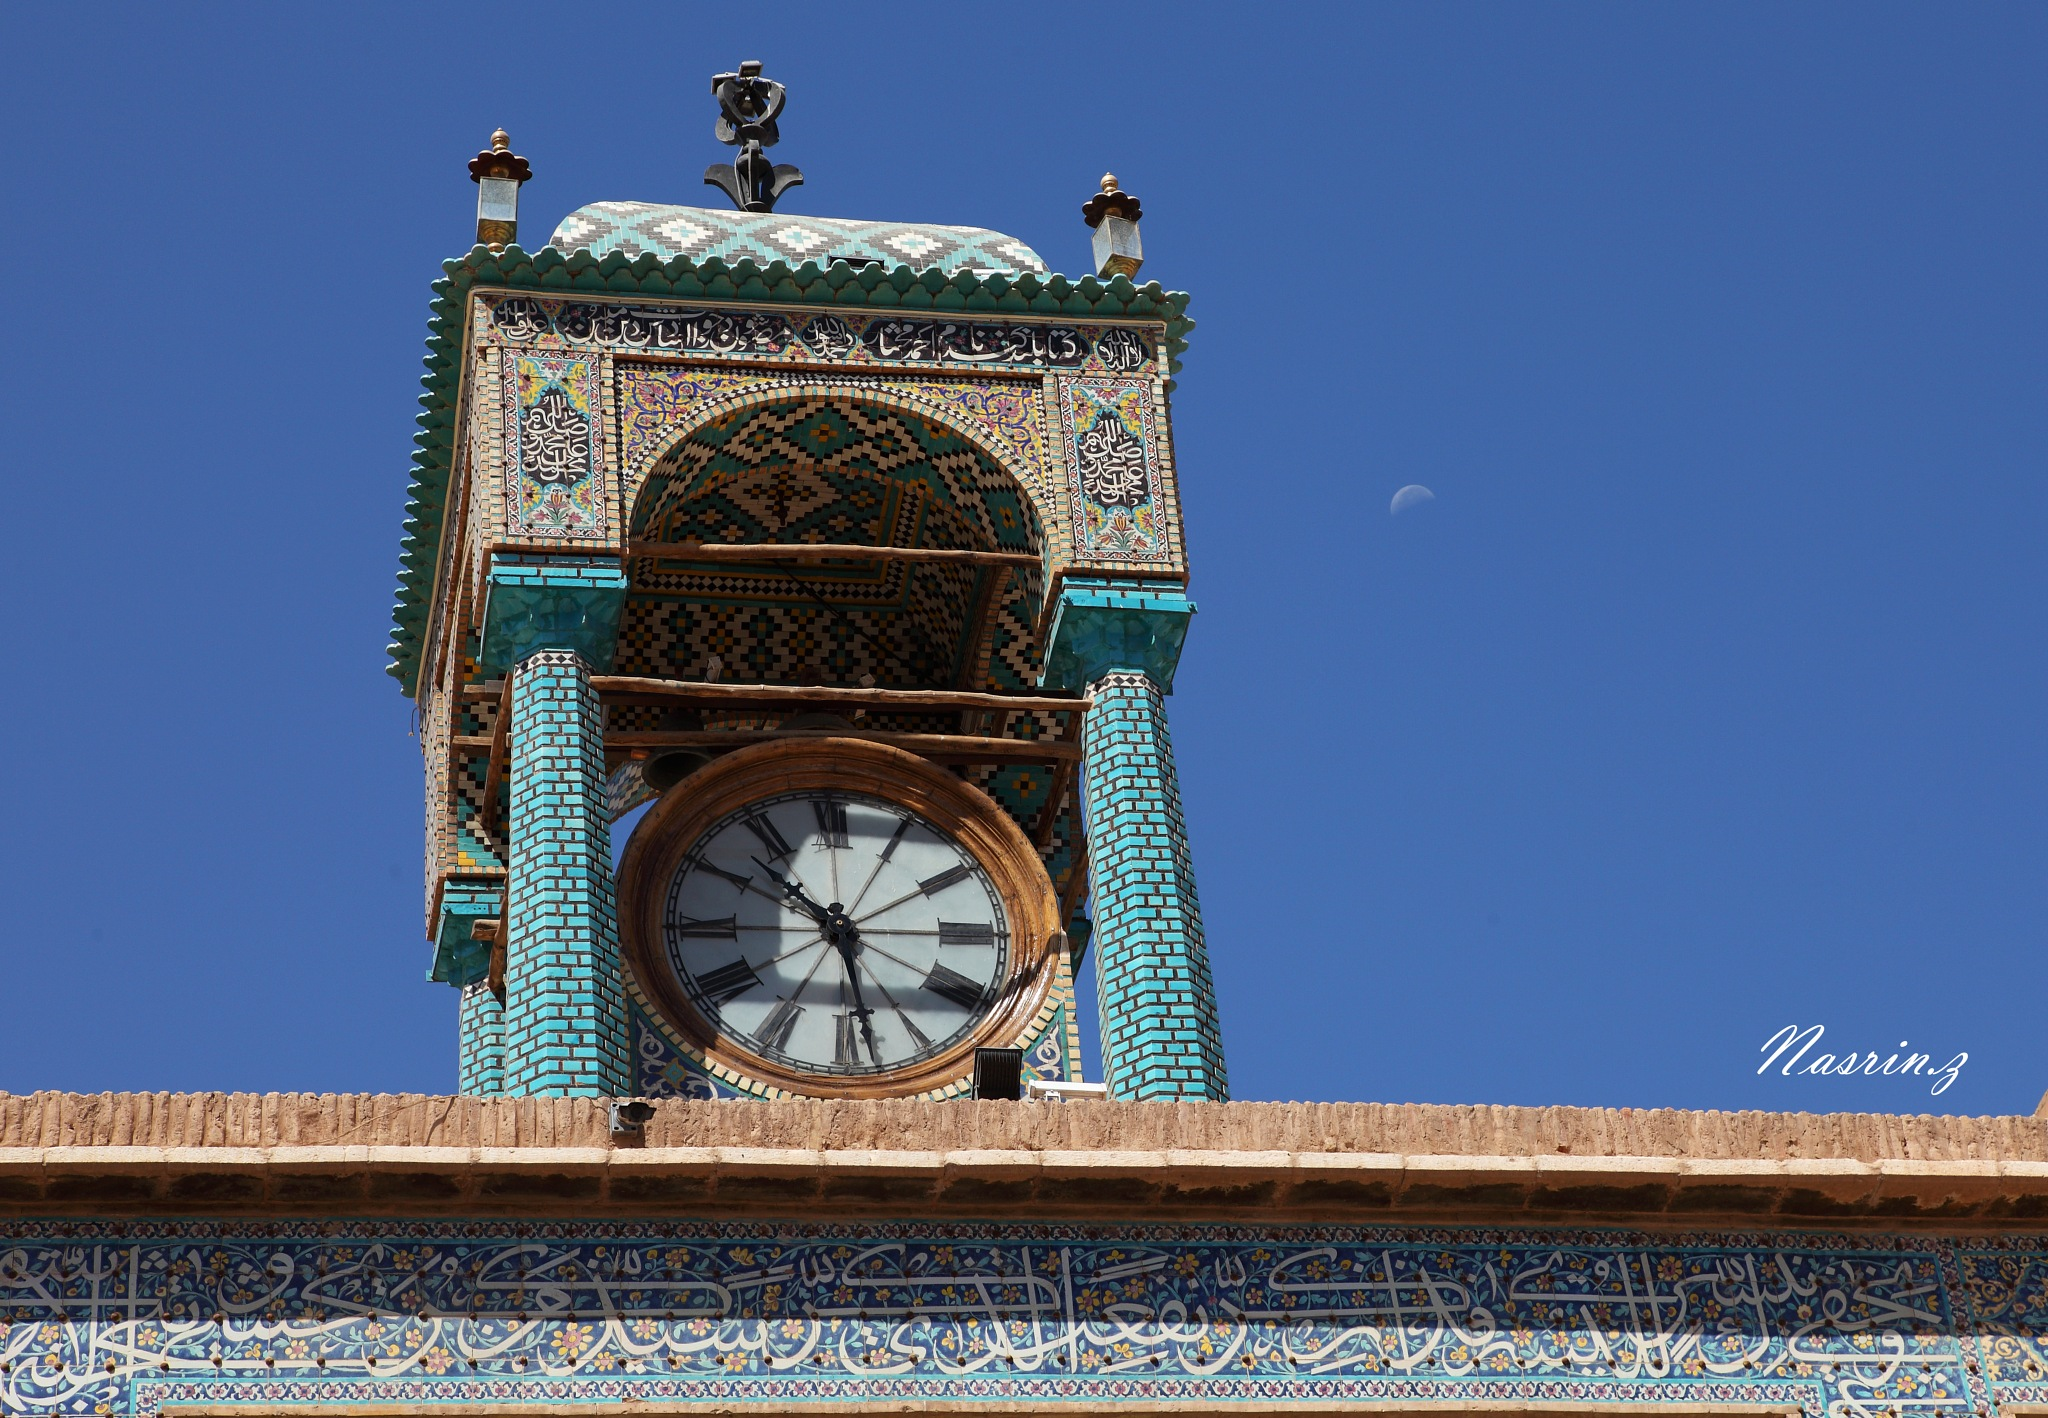 10:30 am with a small moon by Nasrin zeinalizadeh